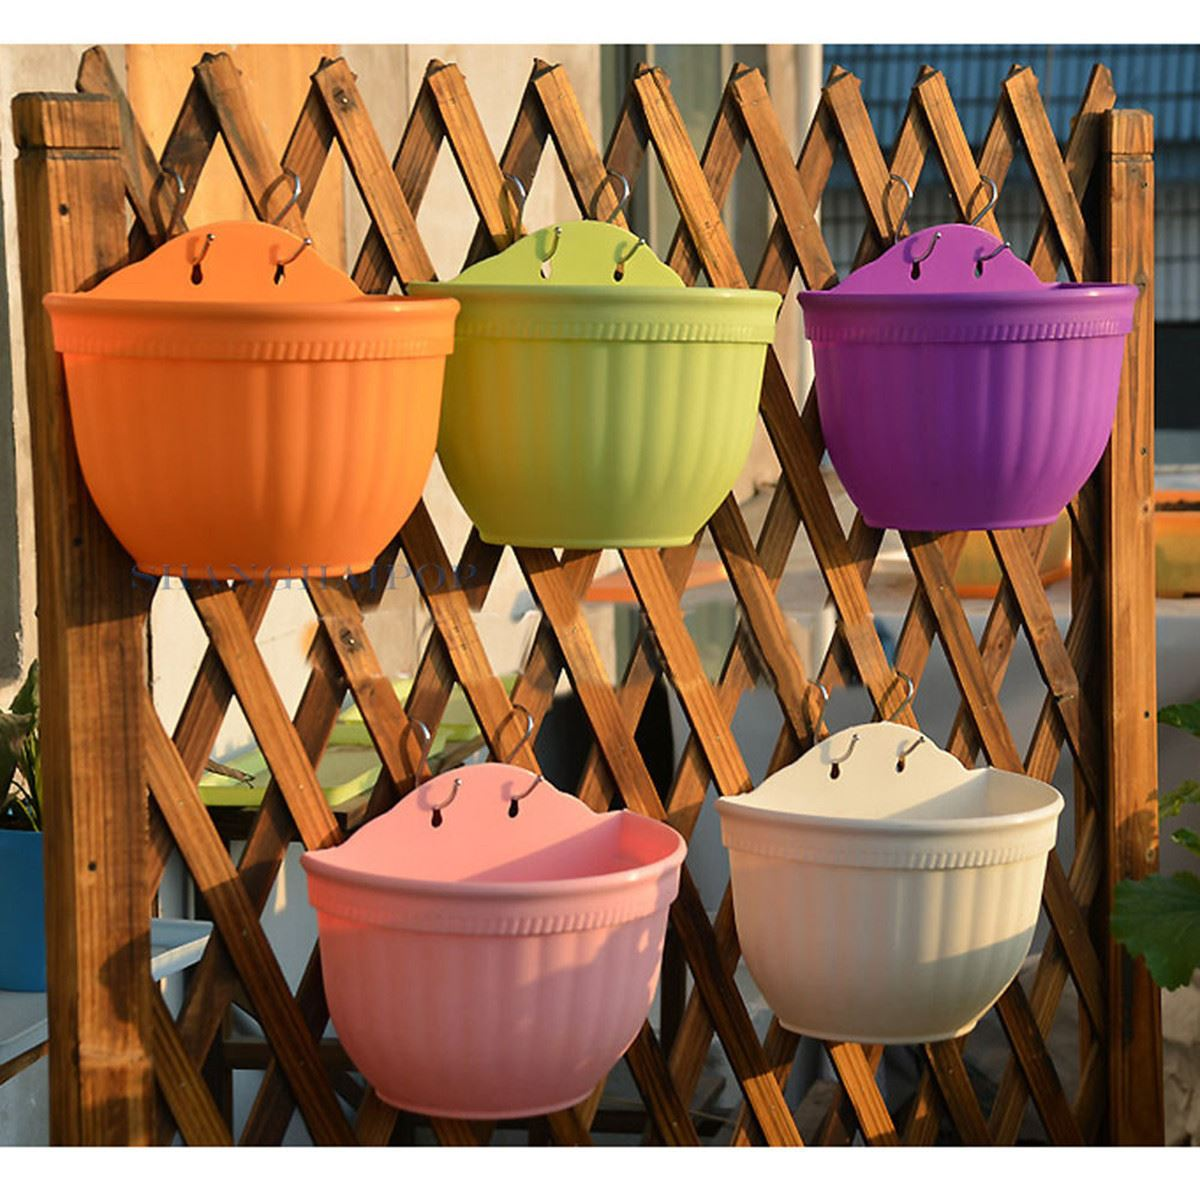 Captivating Multi Colors Plastic Wall Hanging Flower Pots Storage Hanging Basket Planter  Flexible Chain Pots Home Garden Decorative Craftses In Hanging Baskets From  ...